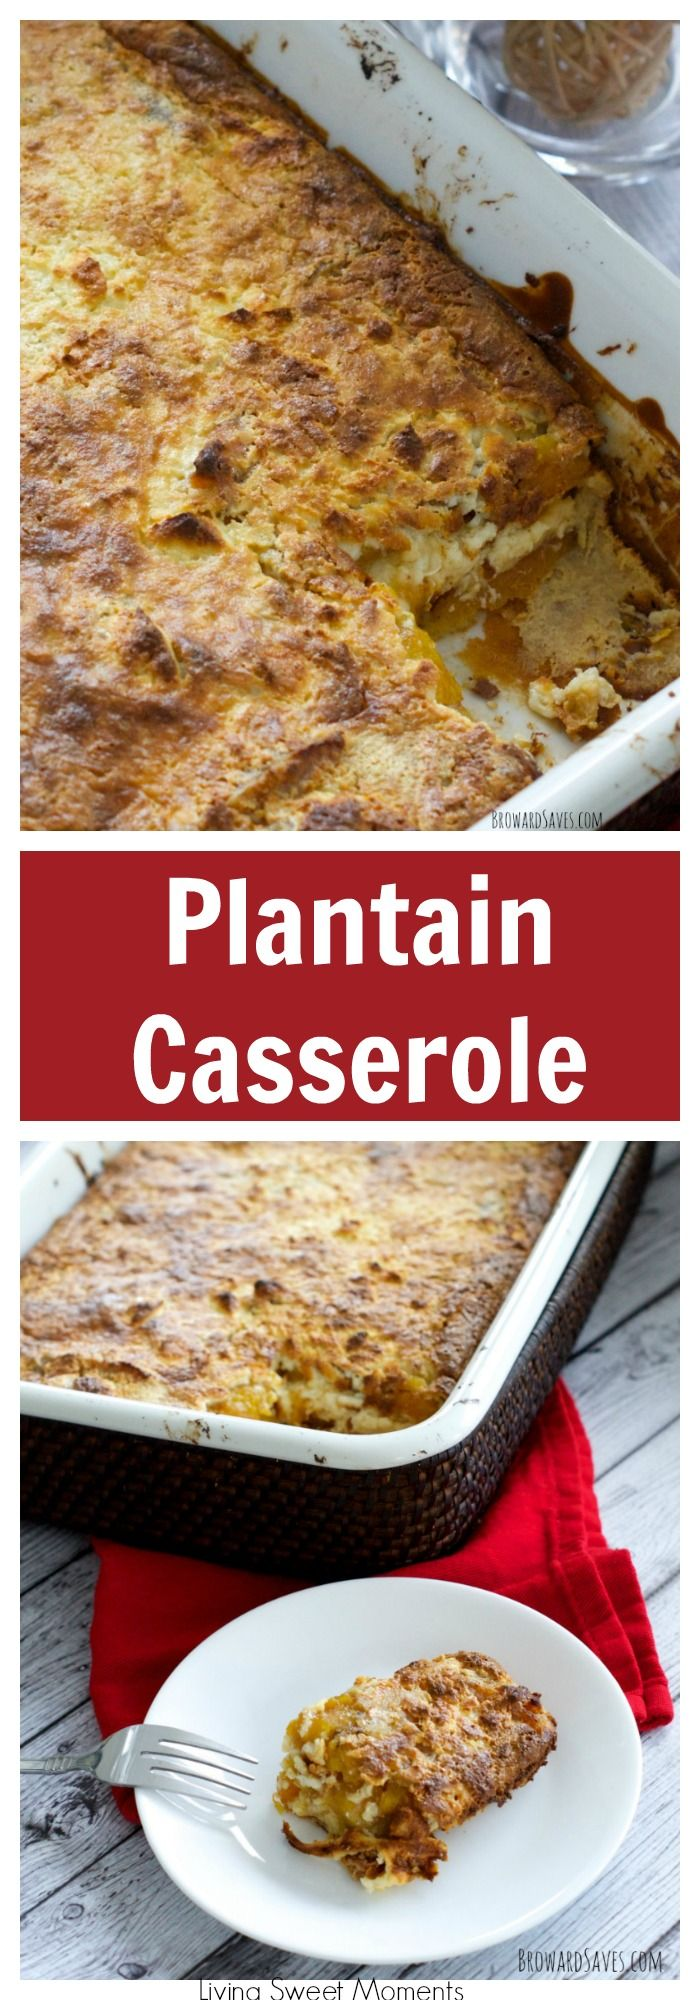 This delicious Venezuelan Plantain Casserole recipe is very easy to make and delicious. The perfect side dish to any dinner or celebration. More delicious casserole recipes at livingsweetmoments.com  via @Livingsmoments